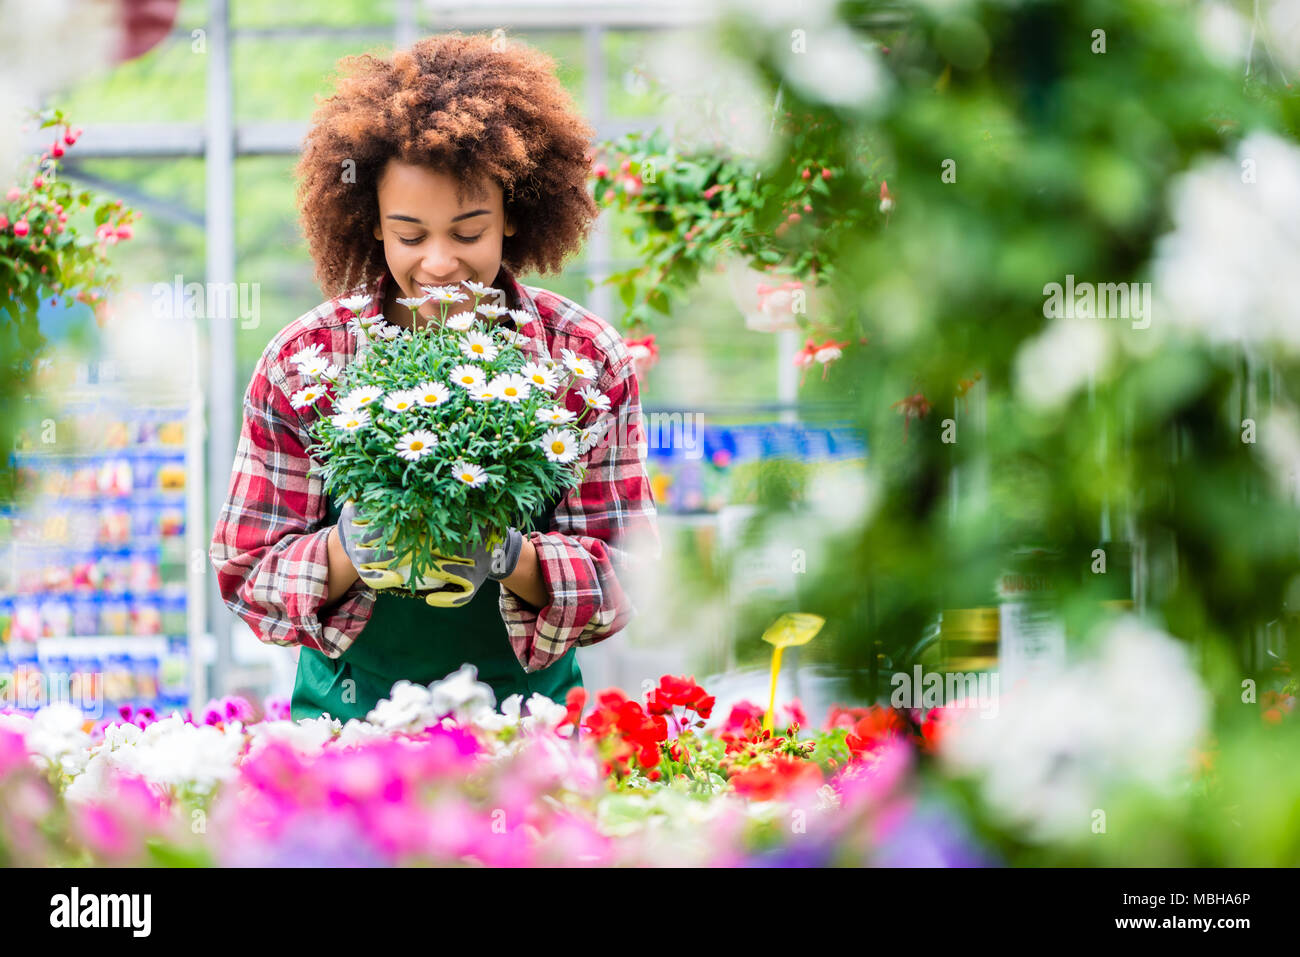 Florist smiling while holding a beautiful potted daisy flower plant - Stock Image